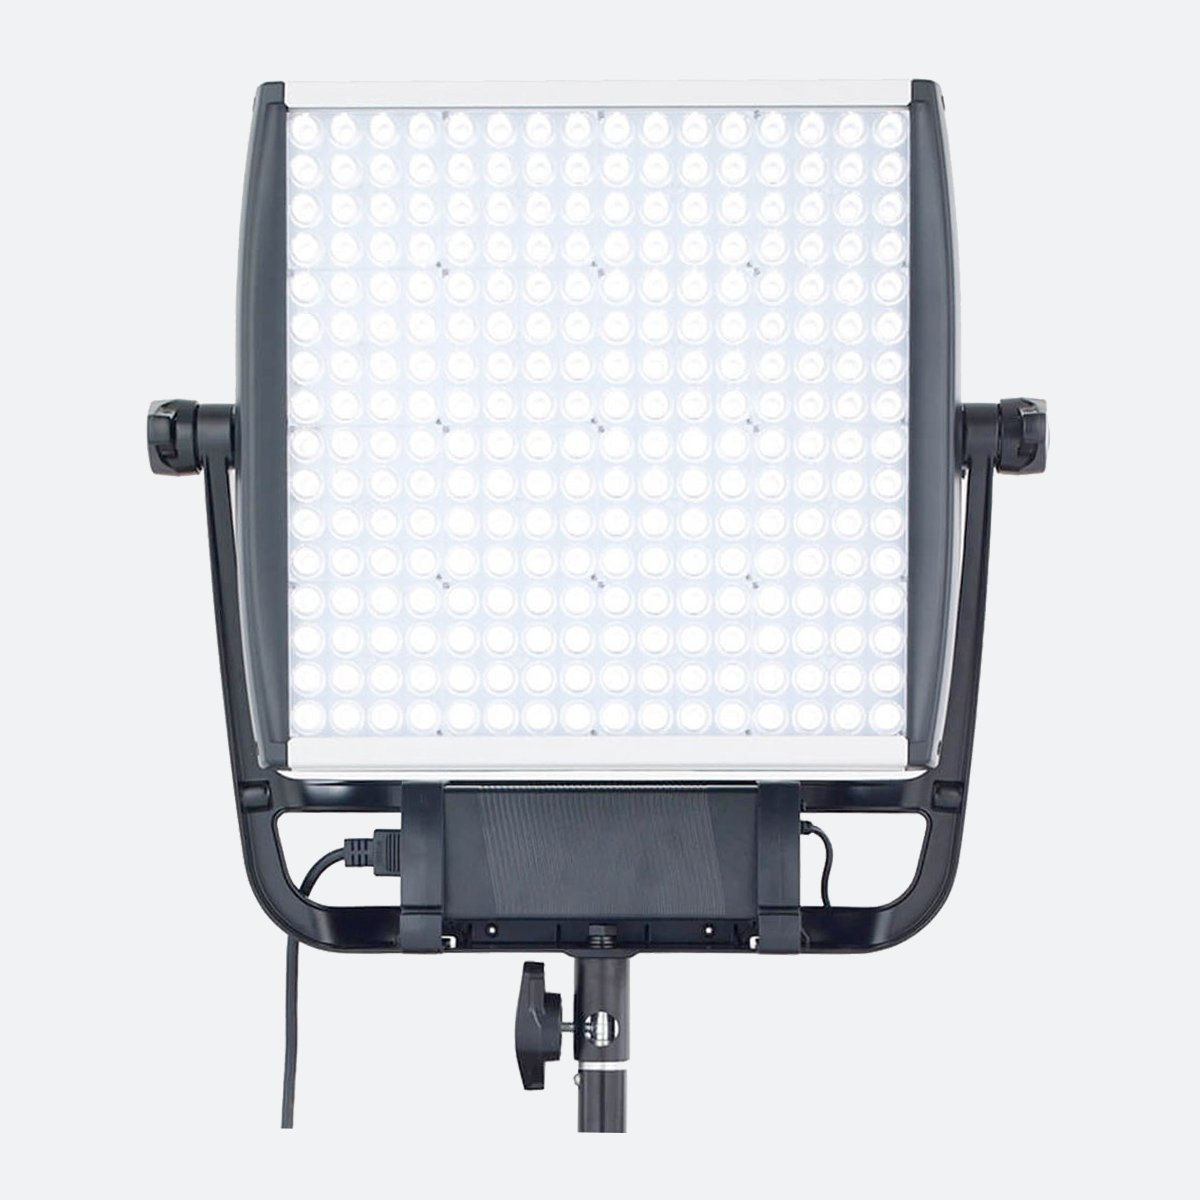 Litepanels Astra 1x1 Daylight Kit